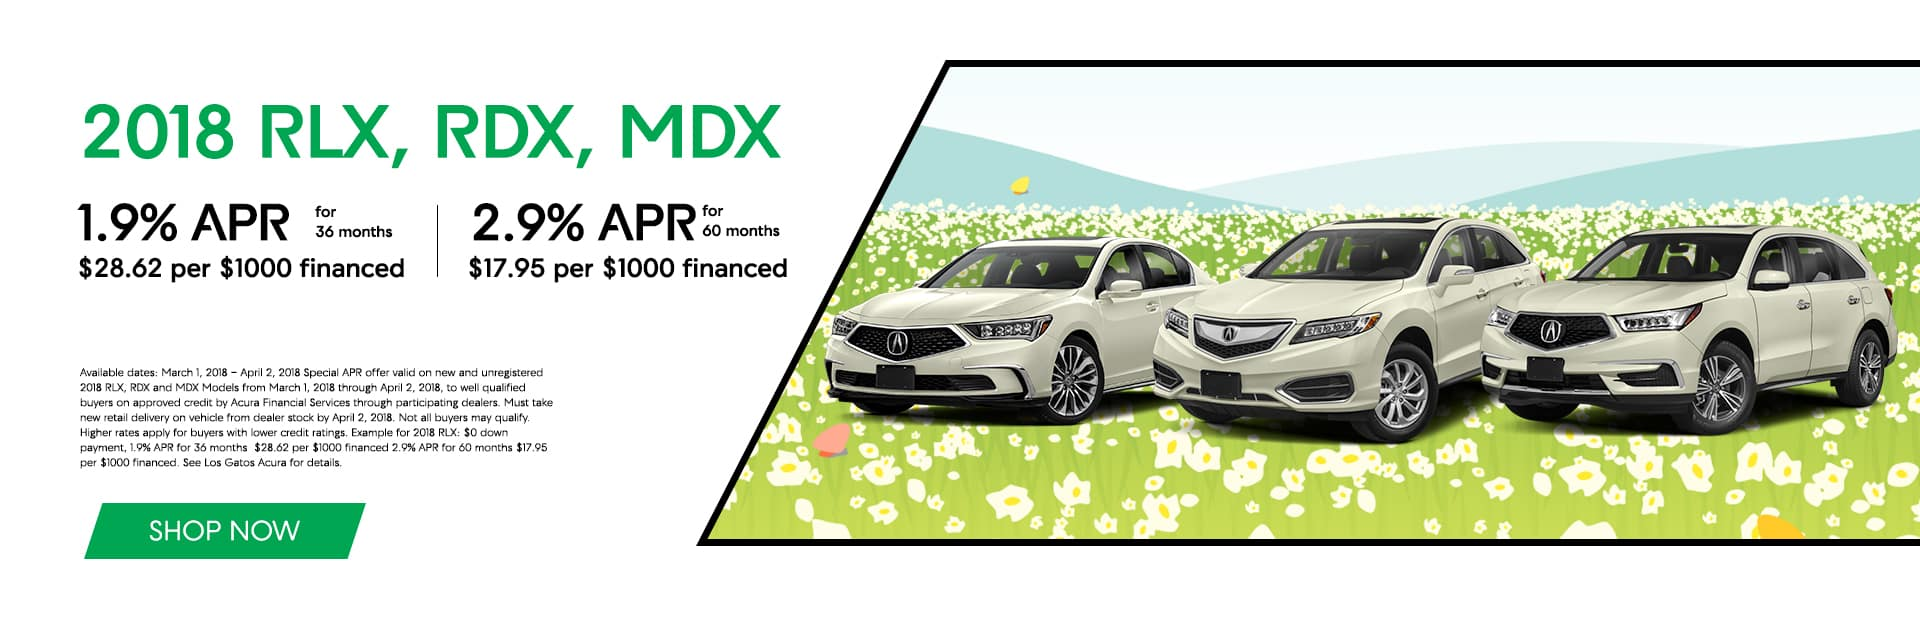 2018 Acura RLX, RDX, MDX Spring Offers Banner